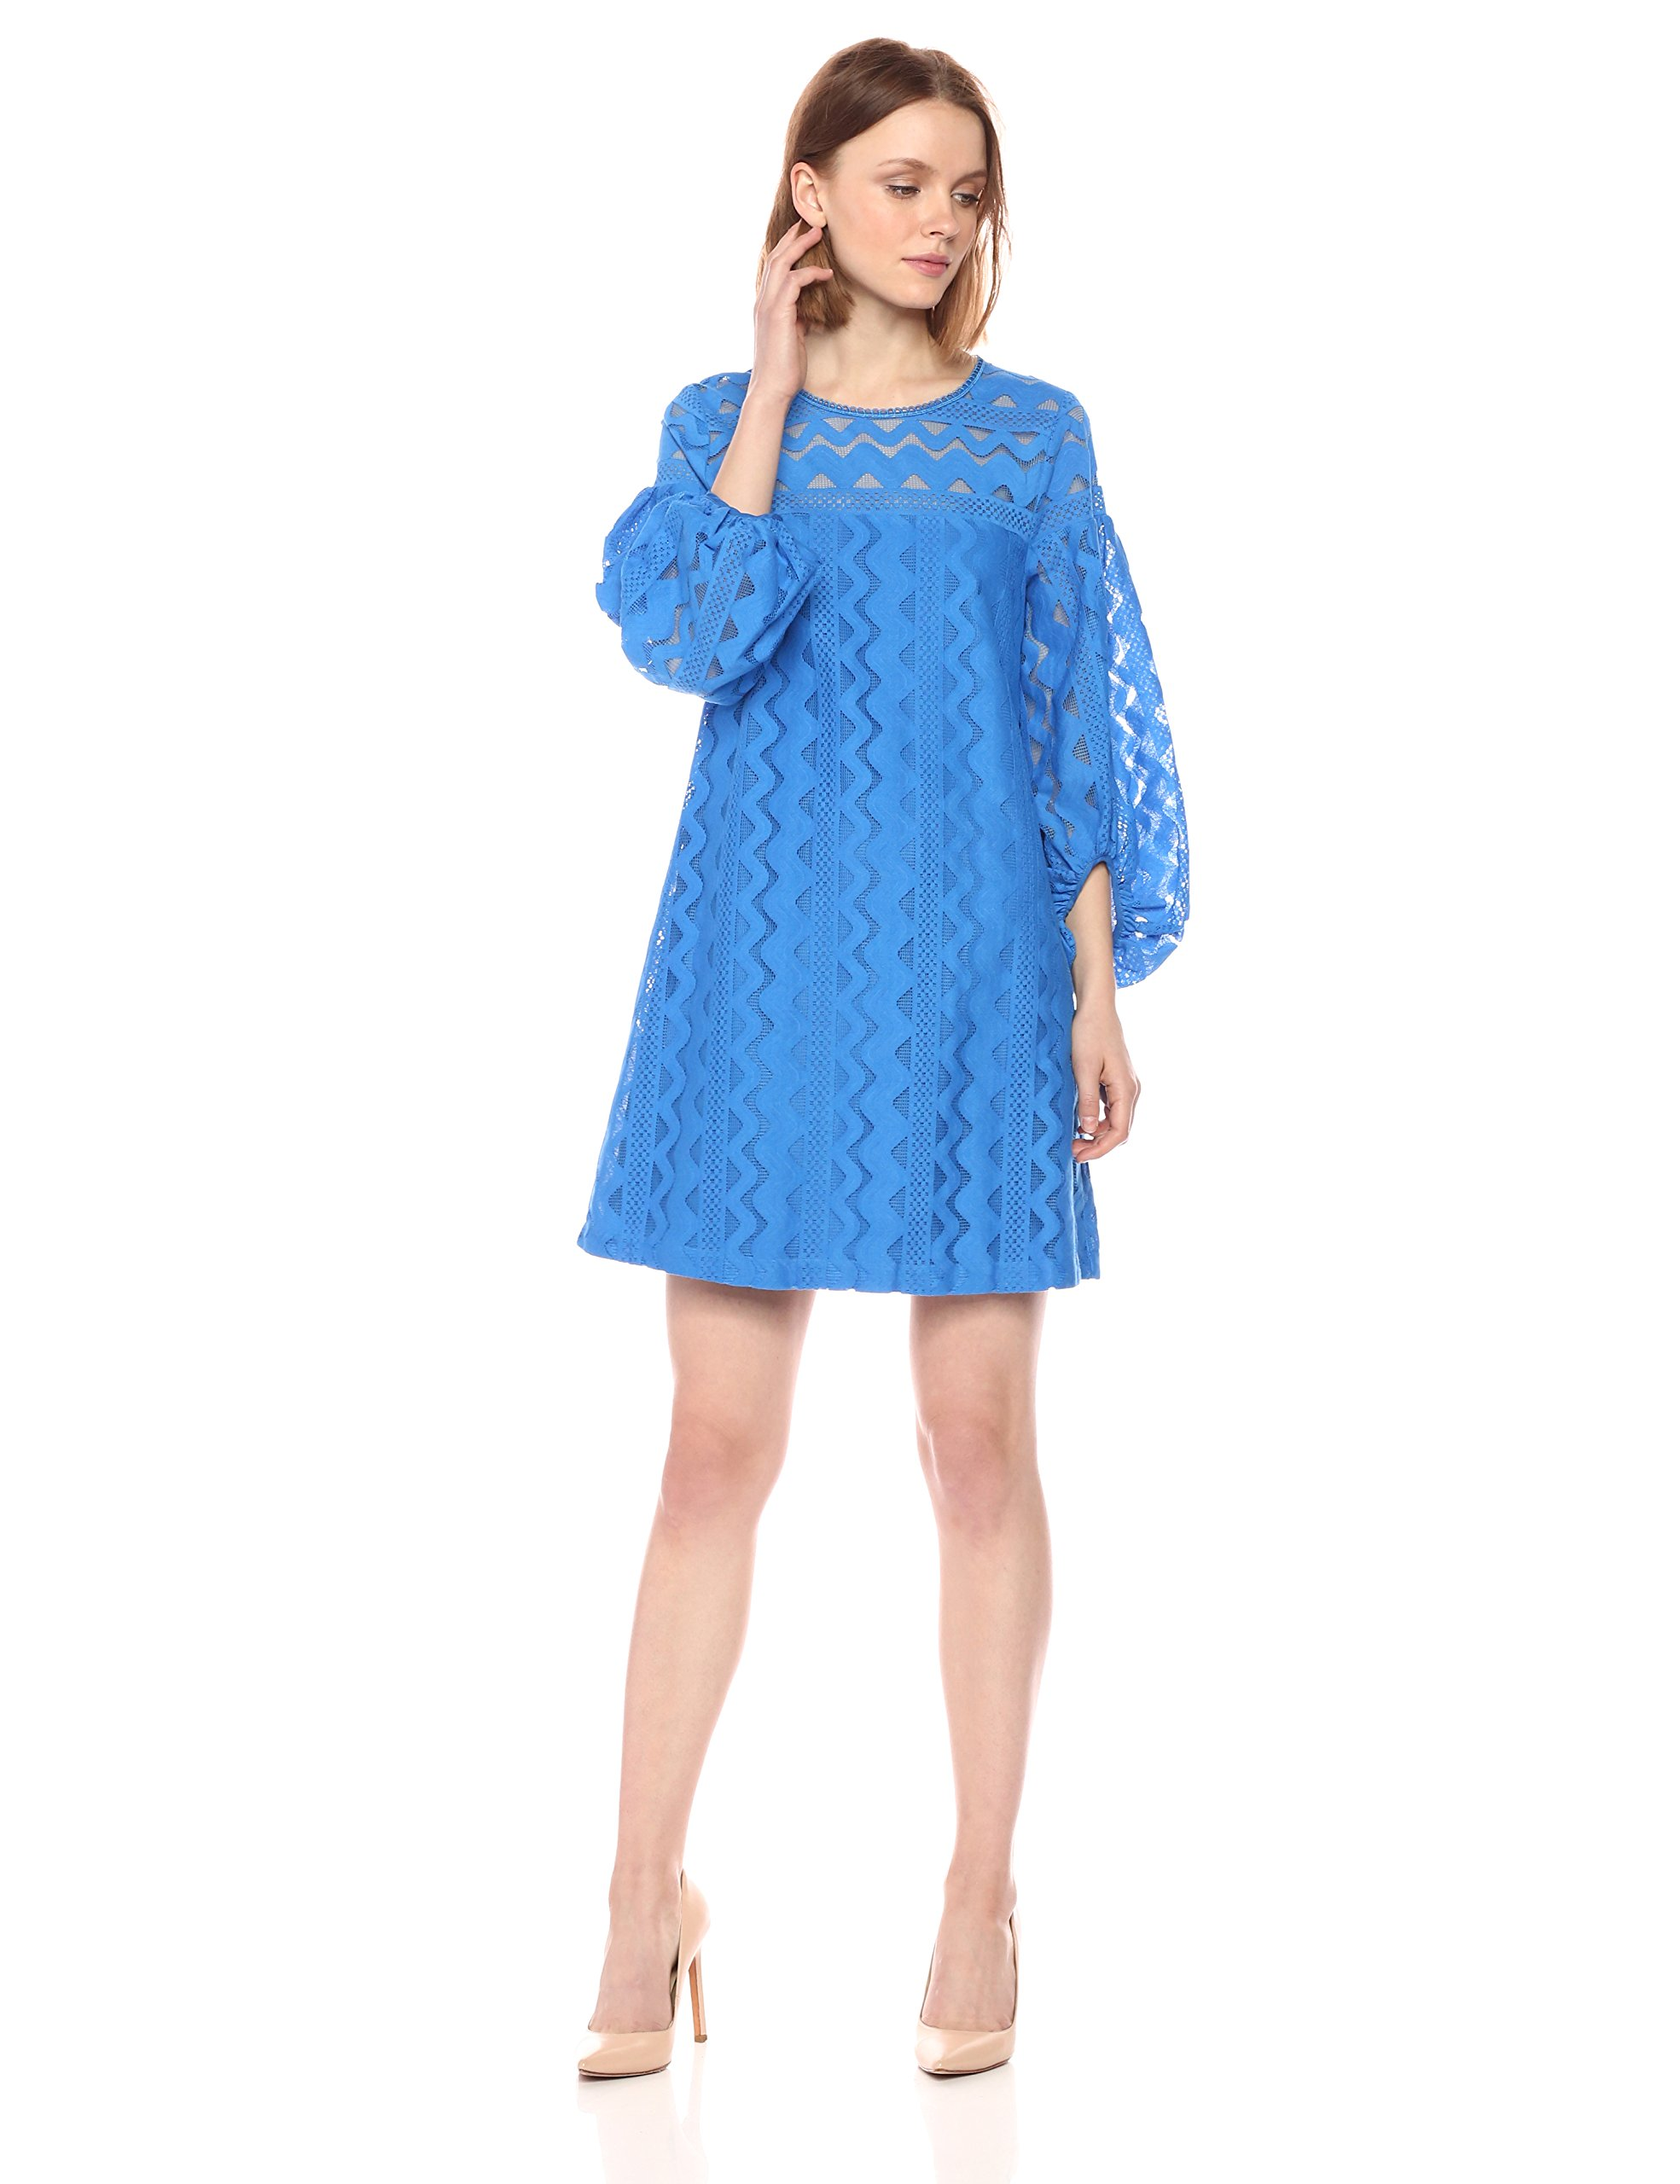 Available at Amazon: Laundry by Shelli Segal Women's A-line Lace Dress with Full Sleeve